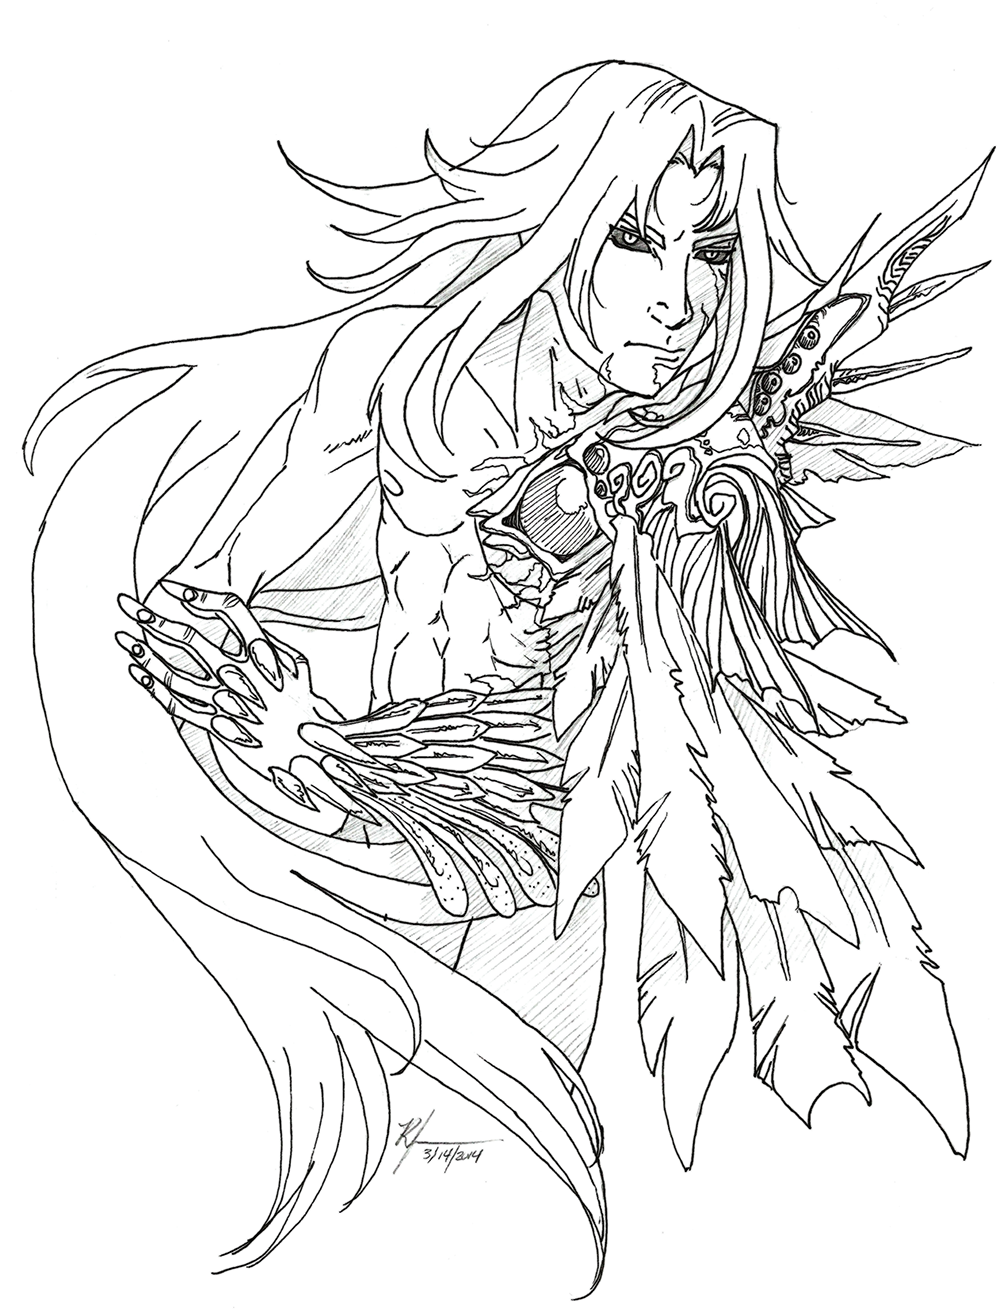 monster sephiroth by TenthDivine